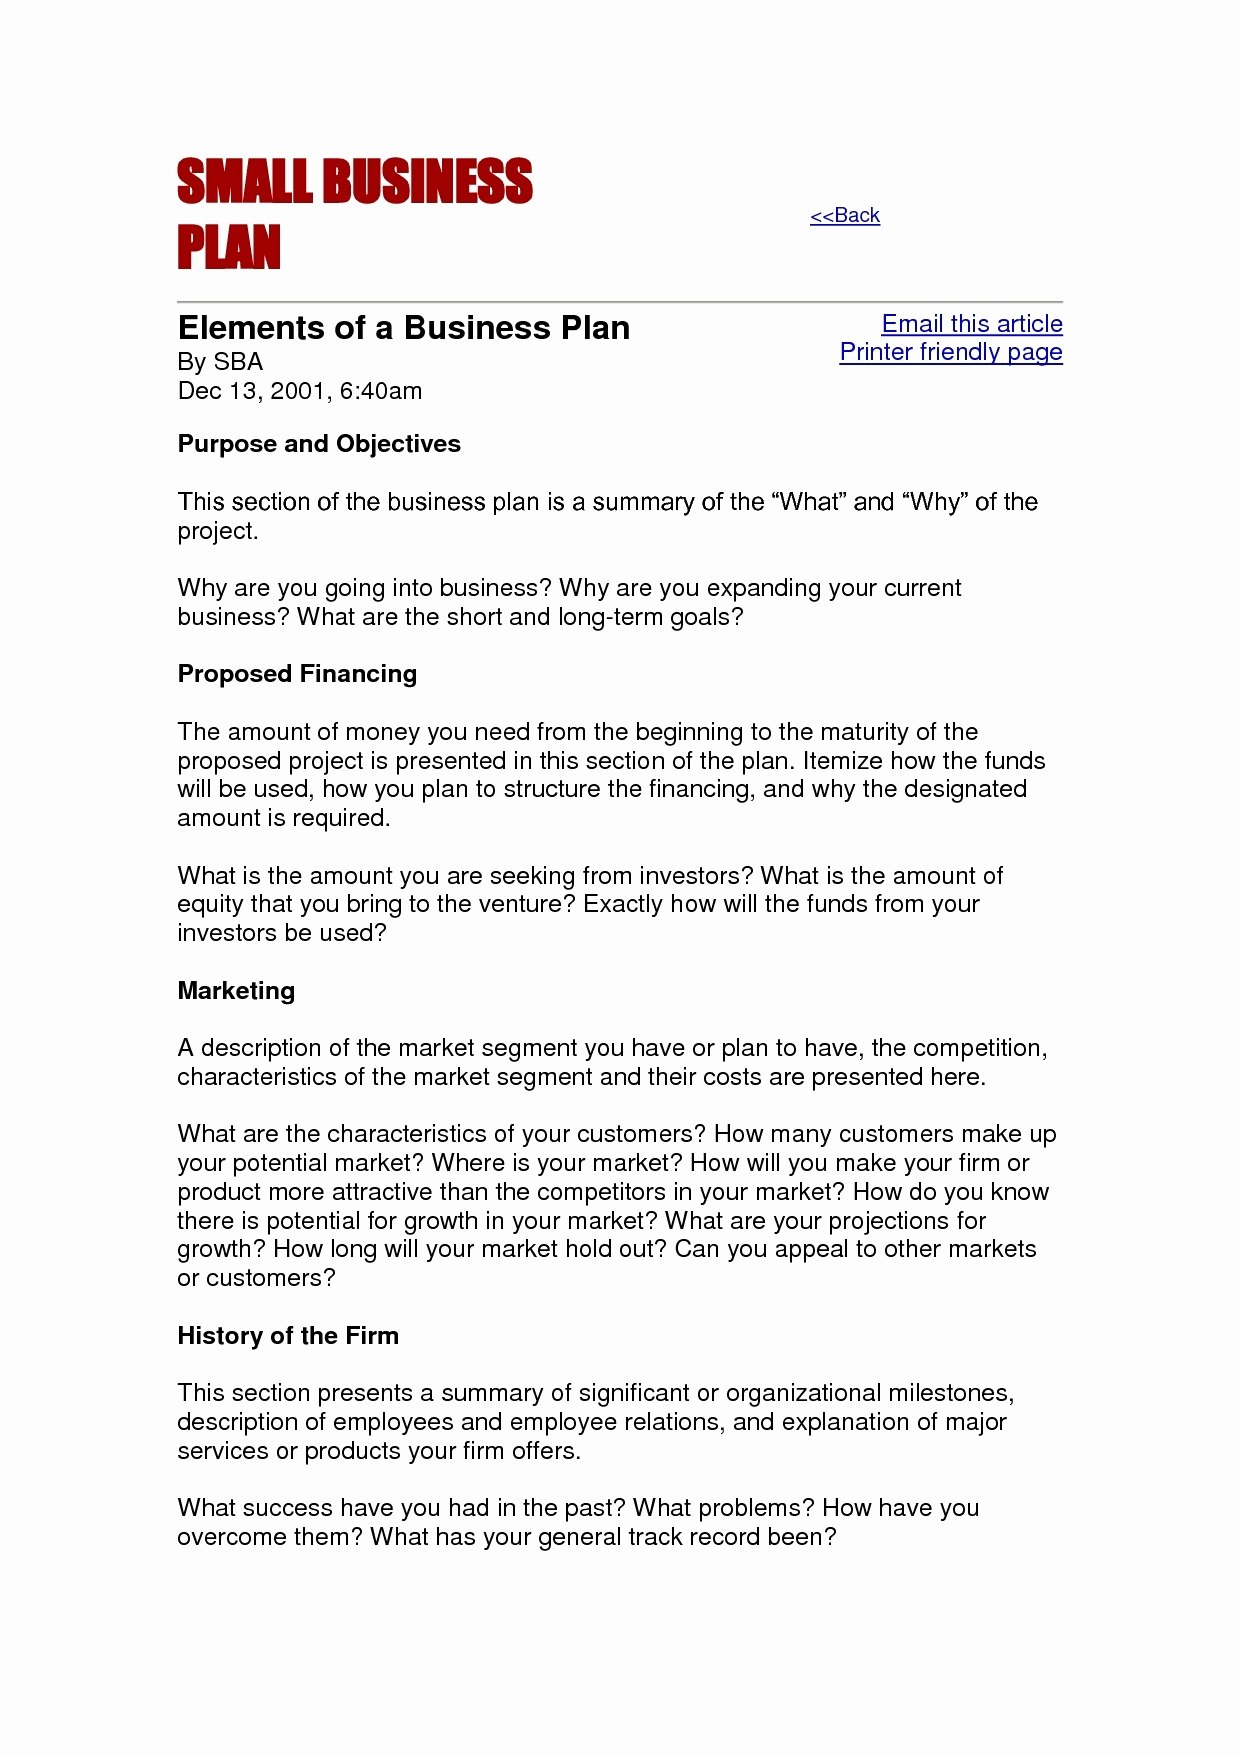 Real Estate Investment Partnership Business Plan Template Intended For Real Estate Investment Business Plan Template